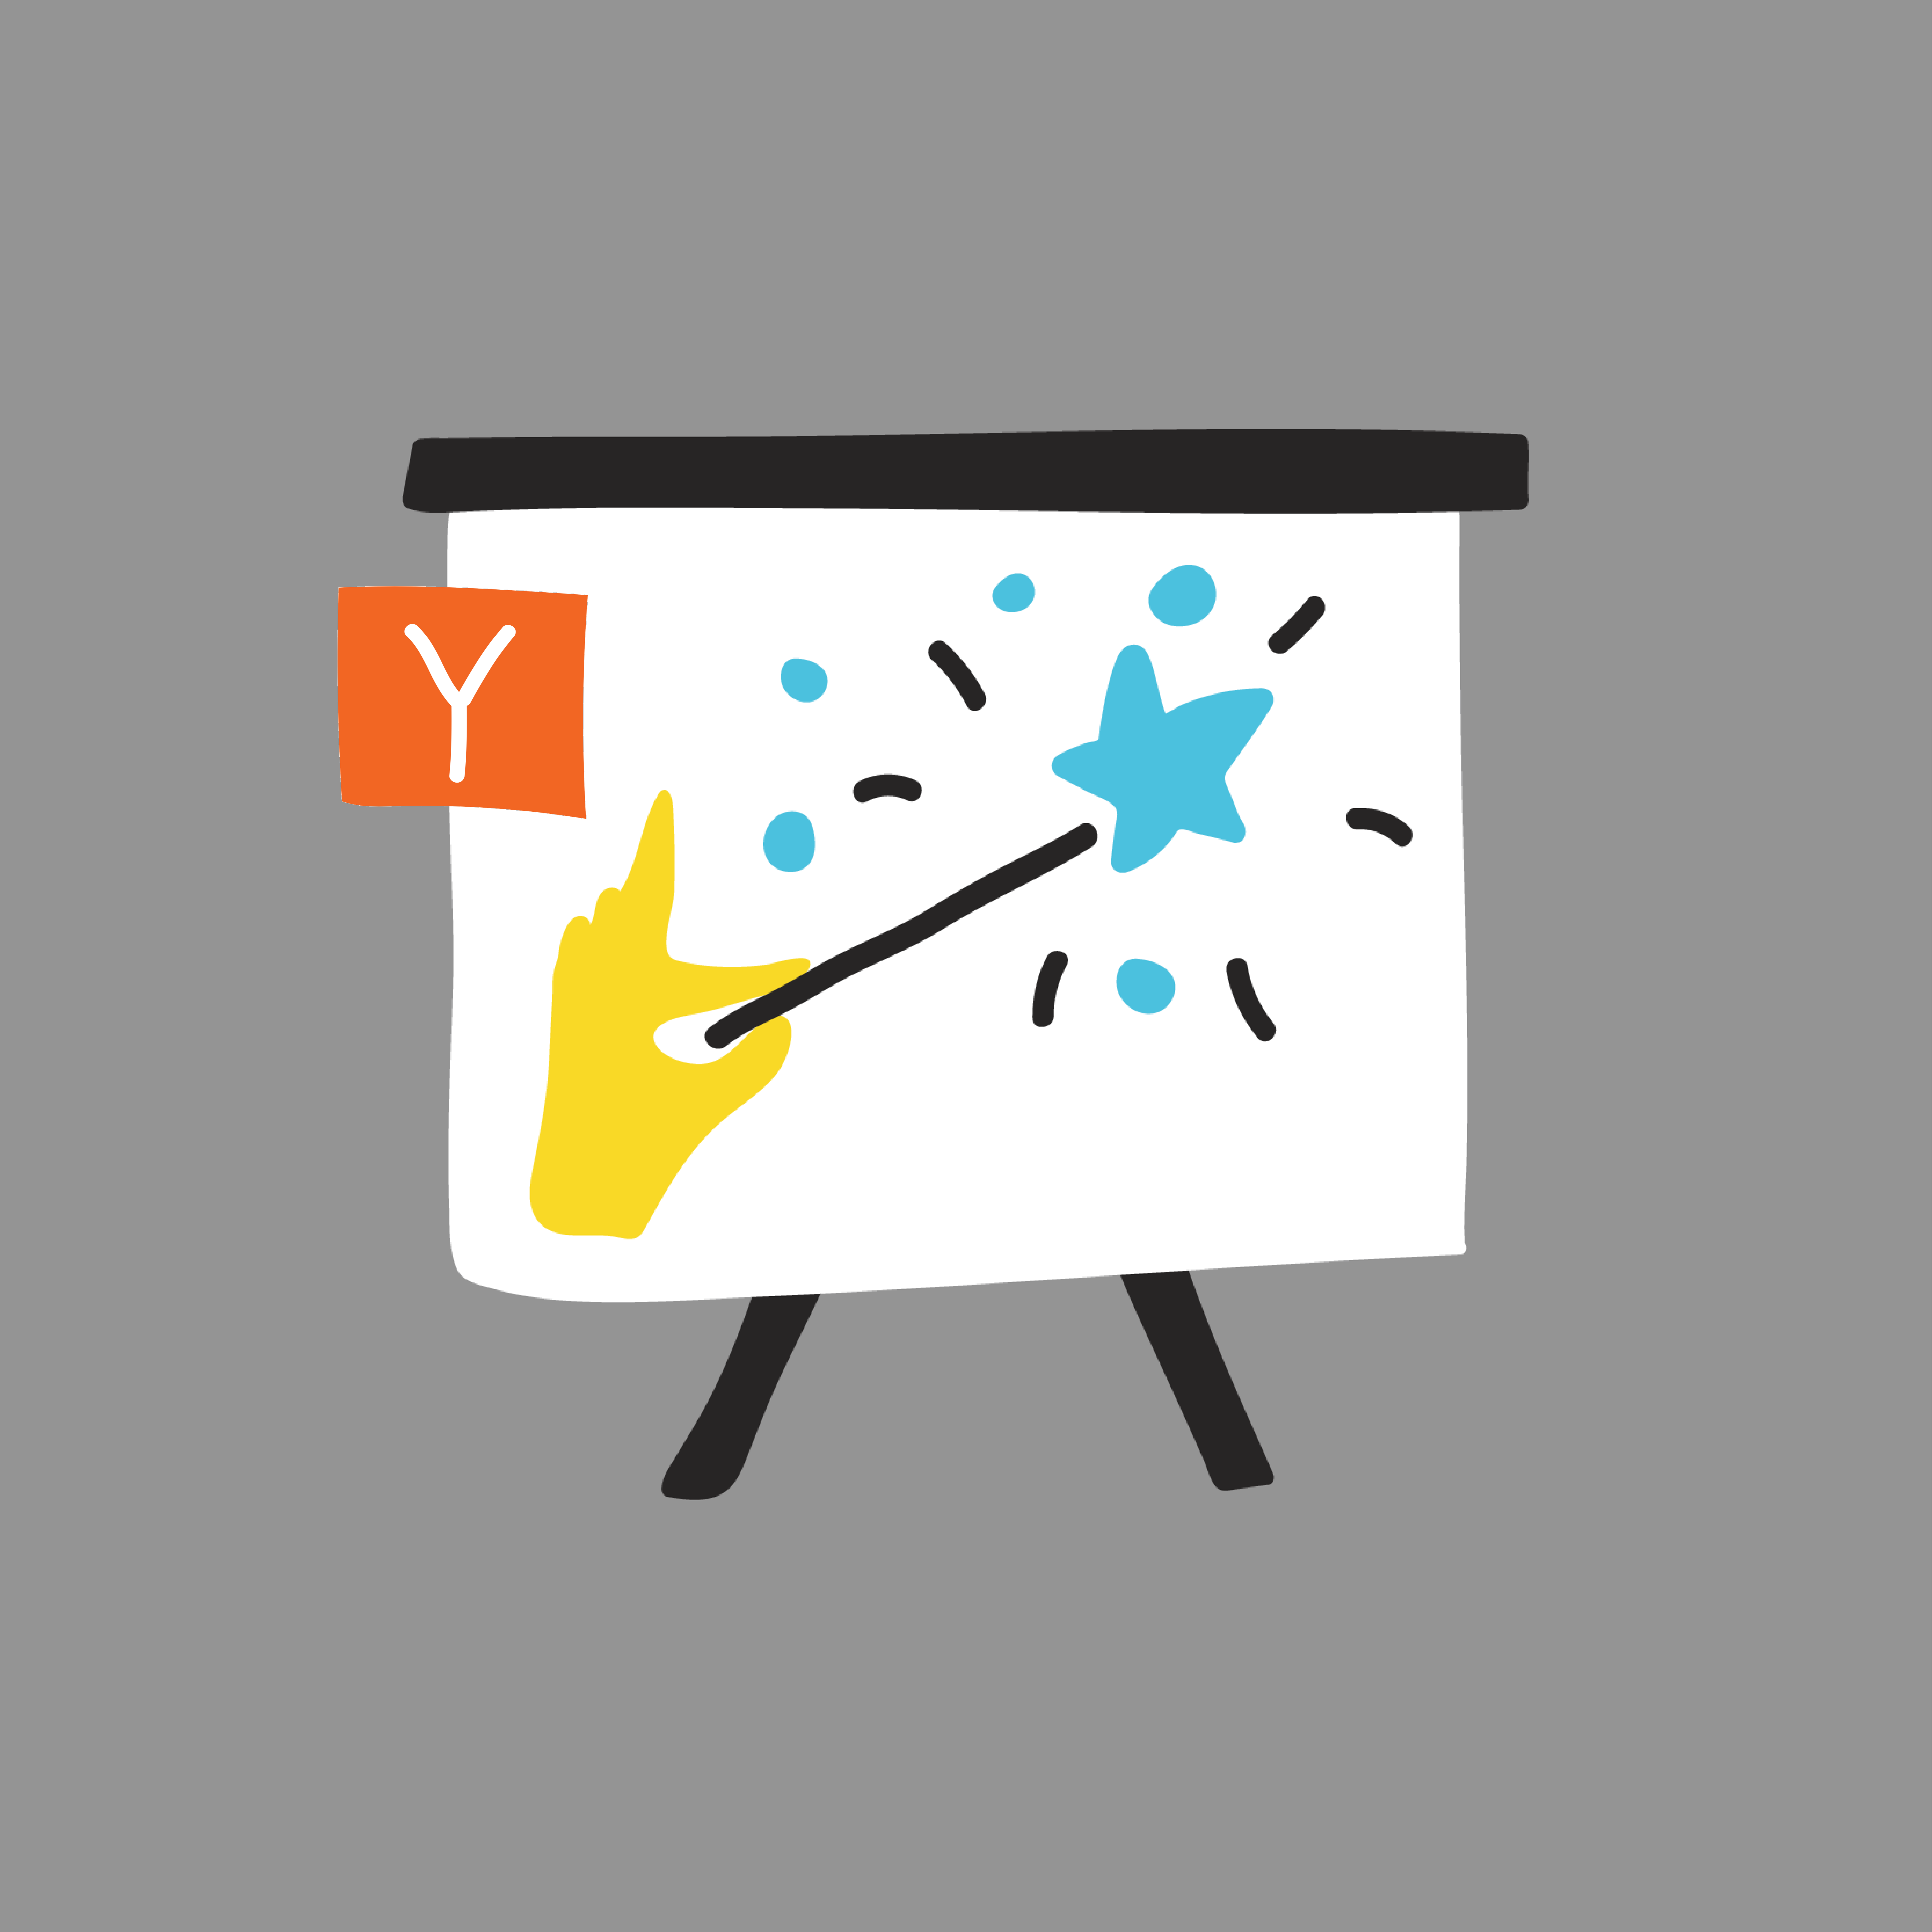 Y Combinator launches a new fundraising format: The one-slide summary